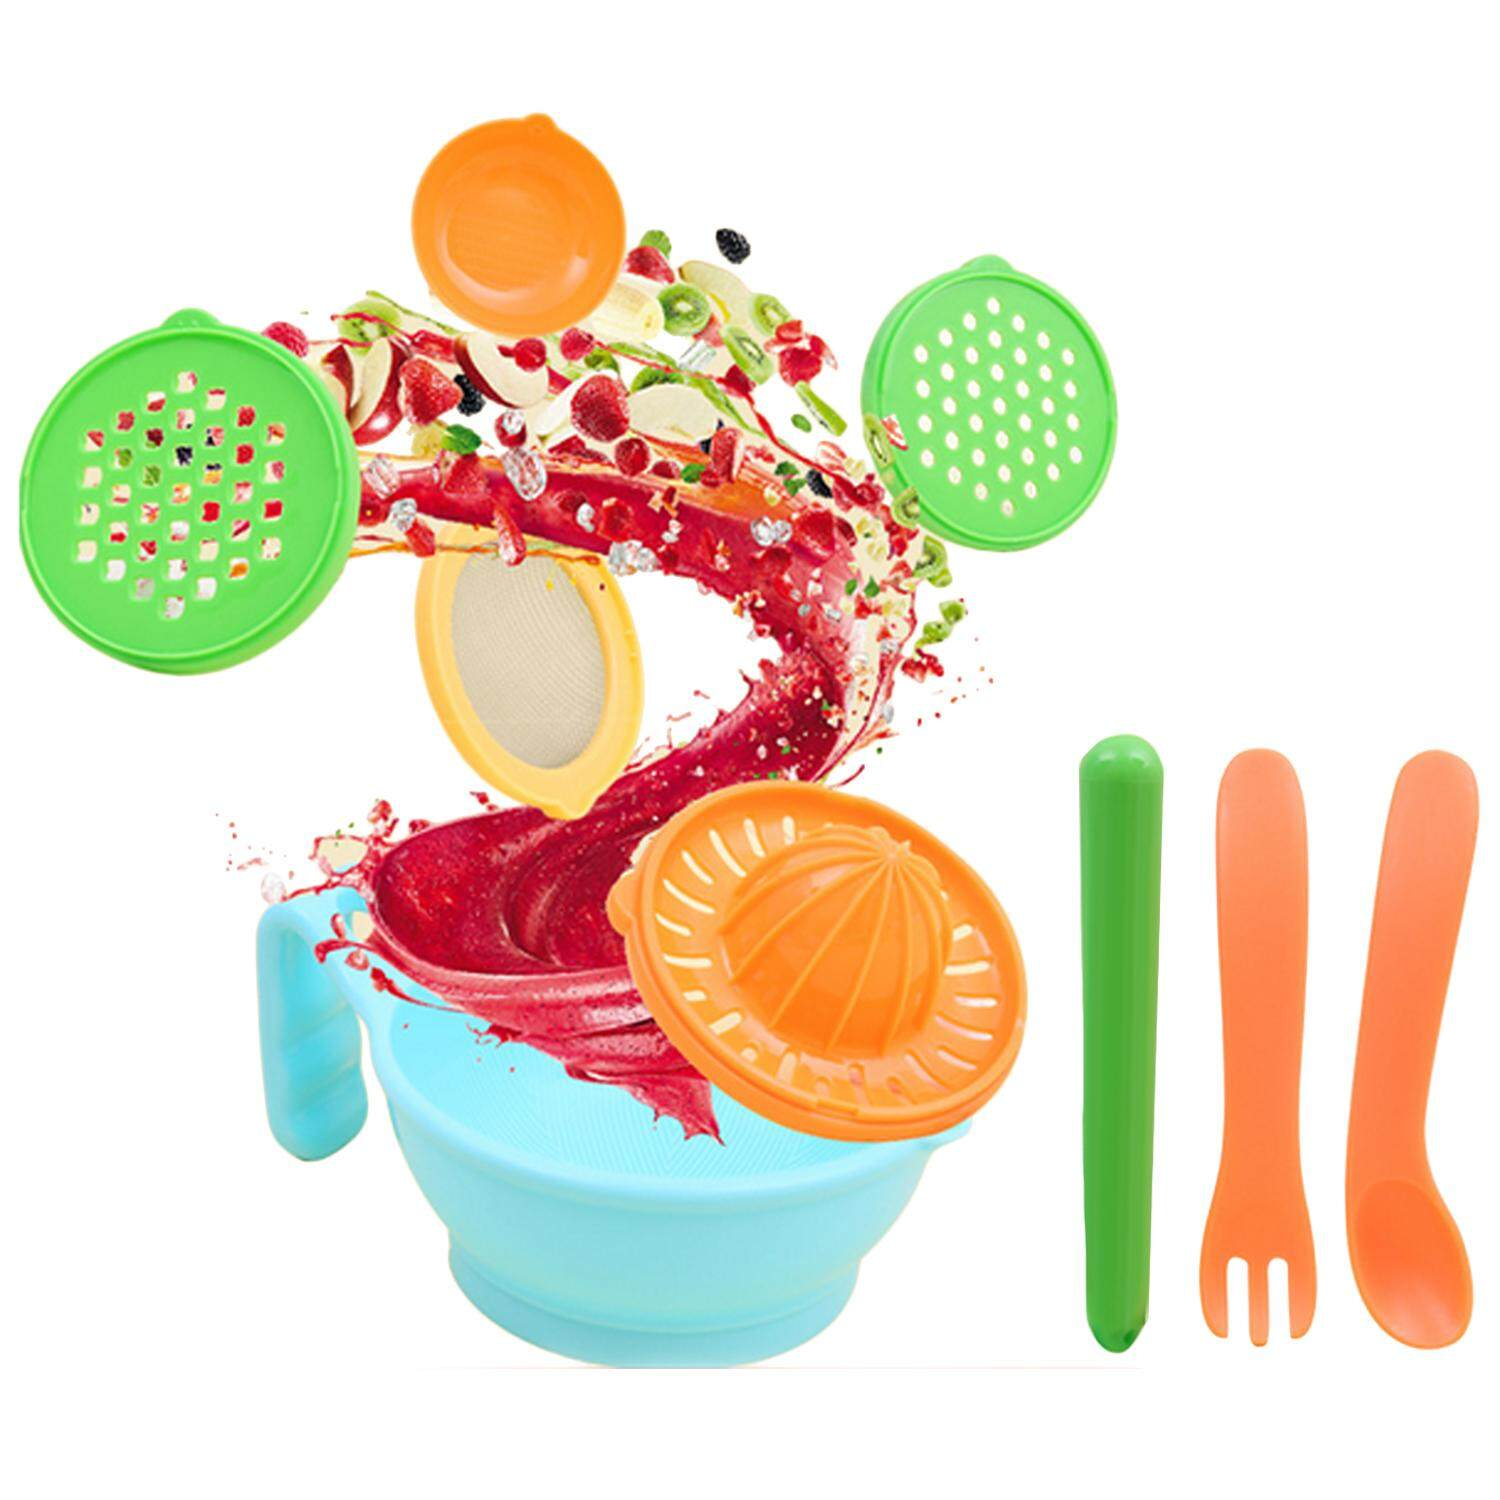 9pcs Multifunction Manual Baby Food Mill Grinding Bowl Grinder Processor Set For Diy Homemade Baby Fruit Mud By Jelly Store.